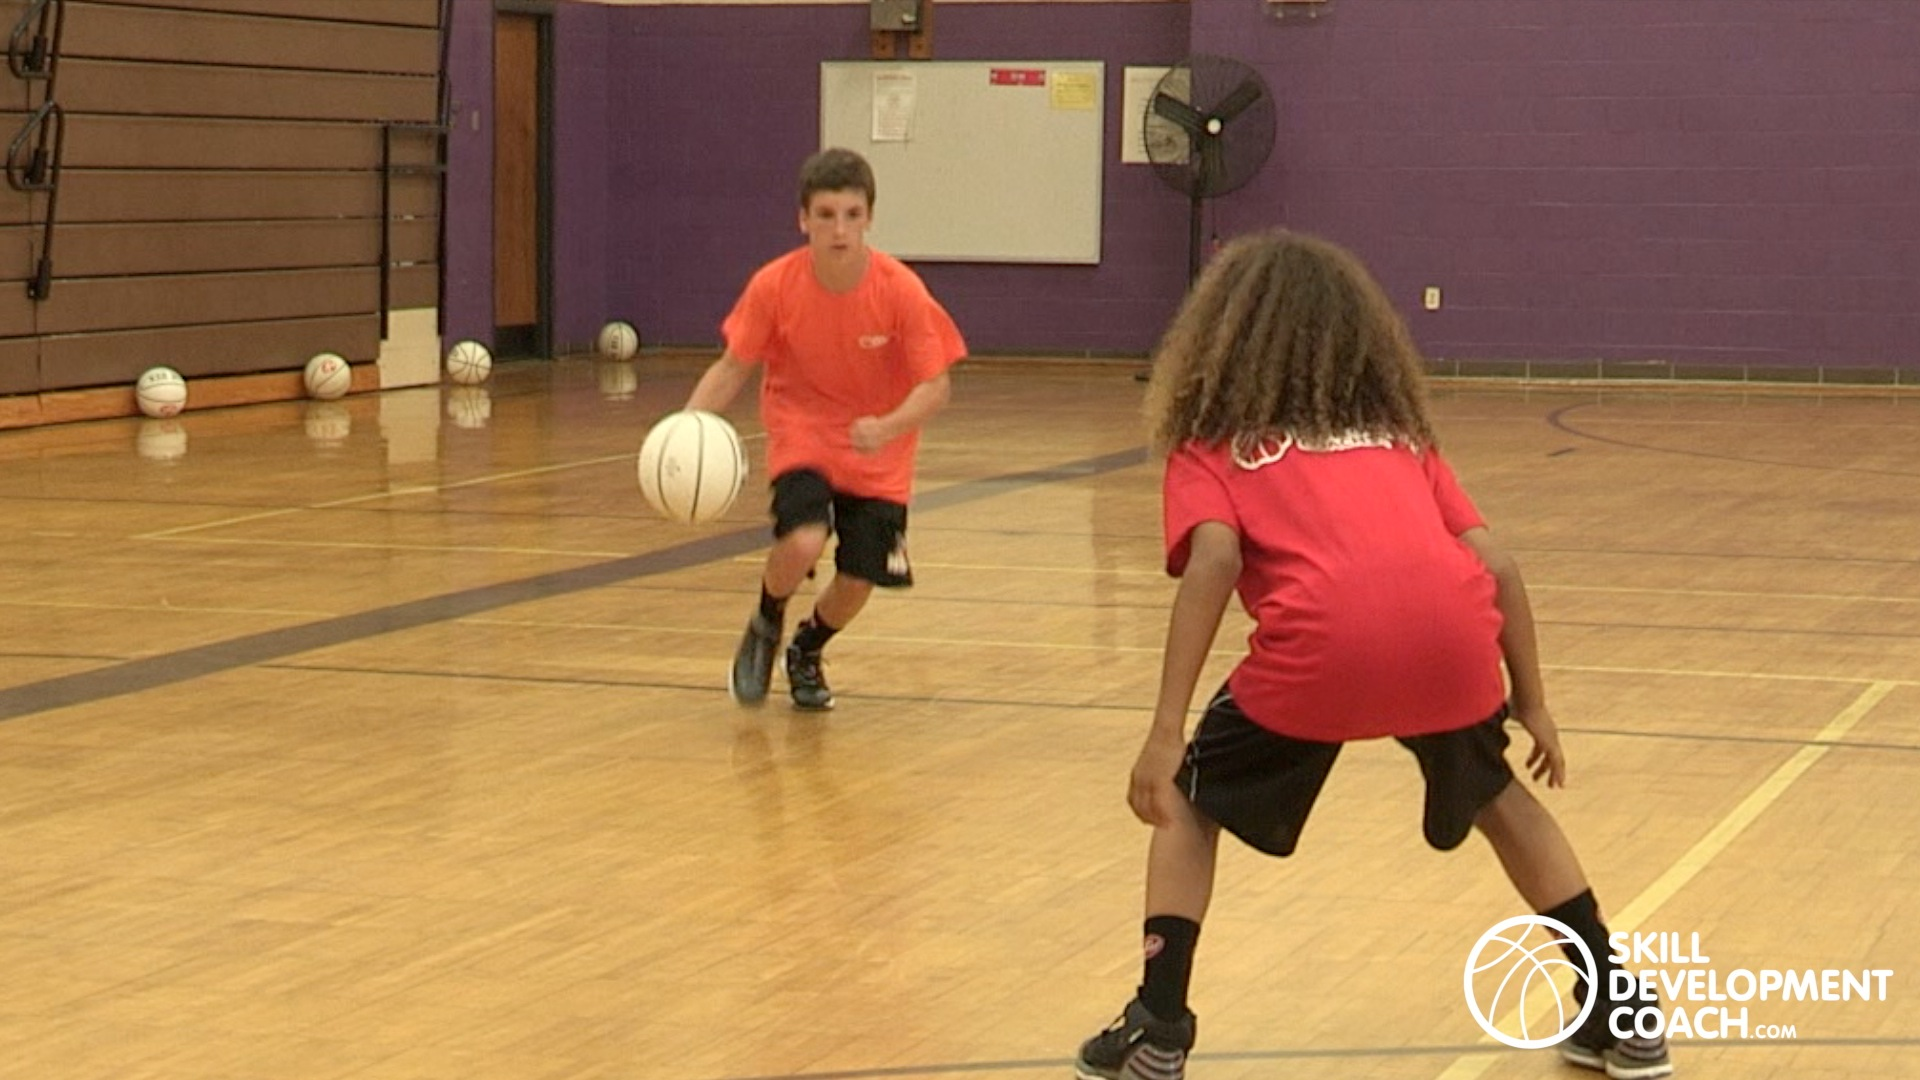 How To Improve Basketball Skills